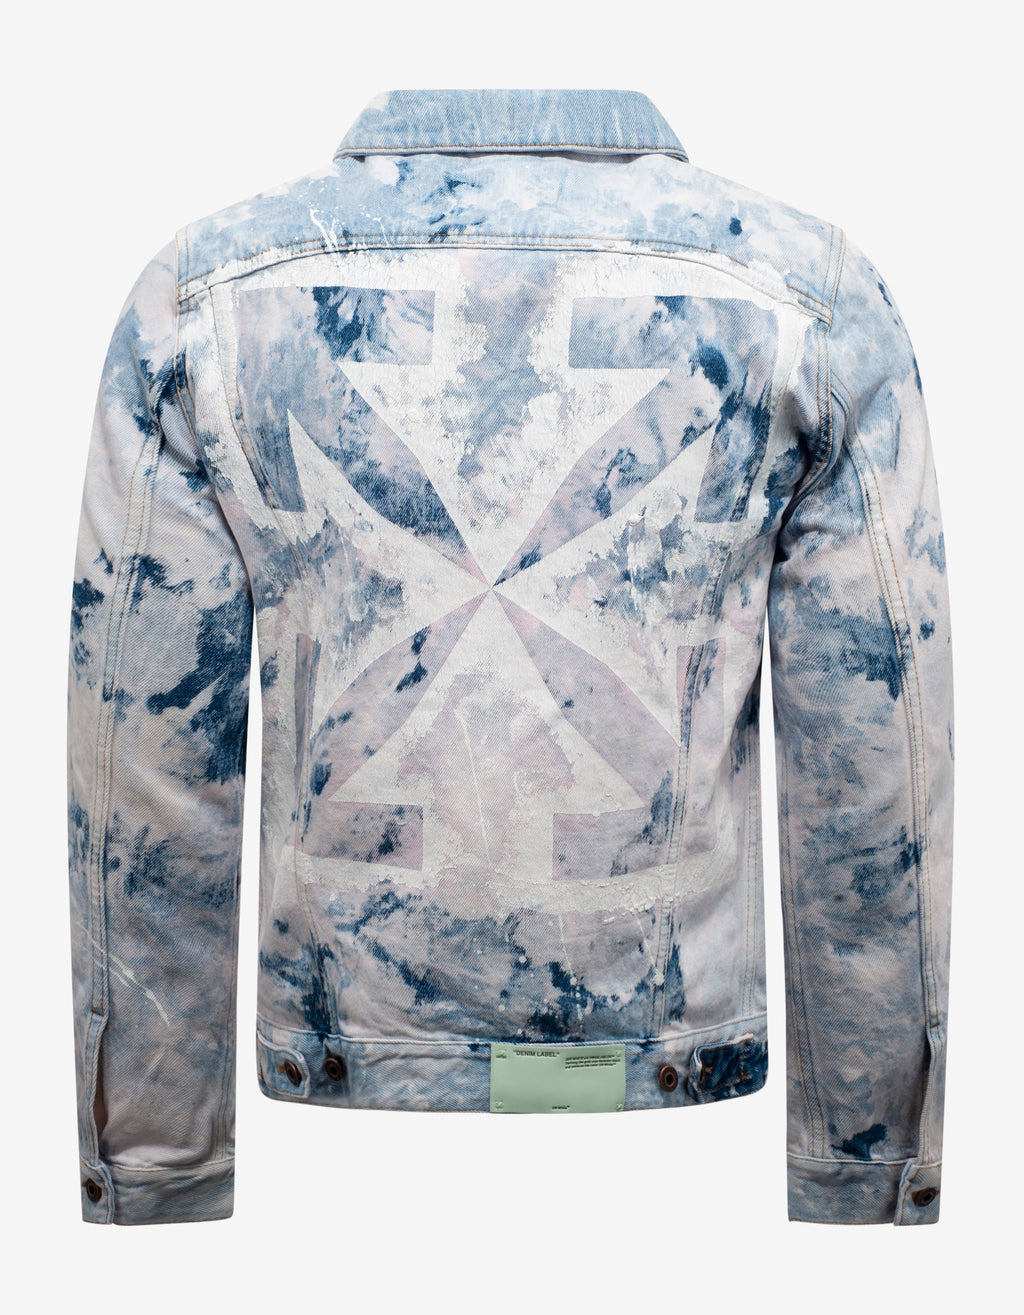 Bleach Wash Arrows Print Denim Jacket